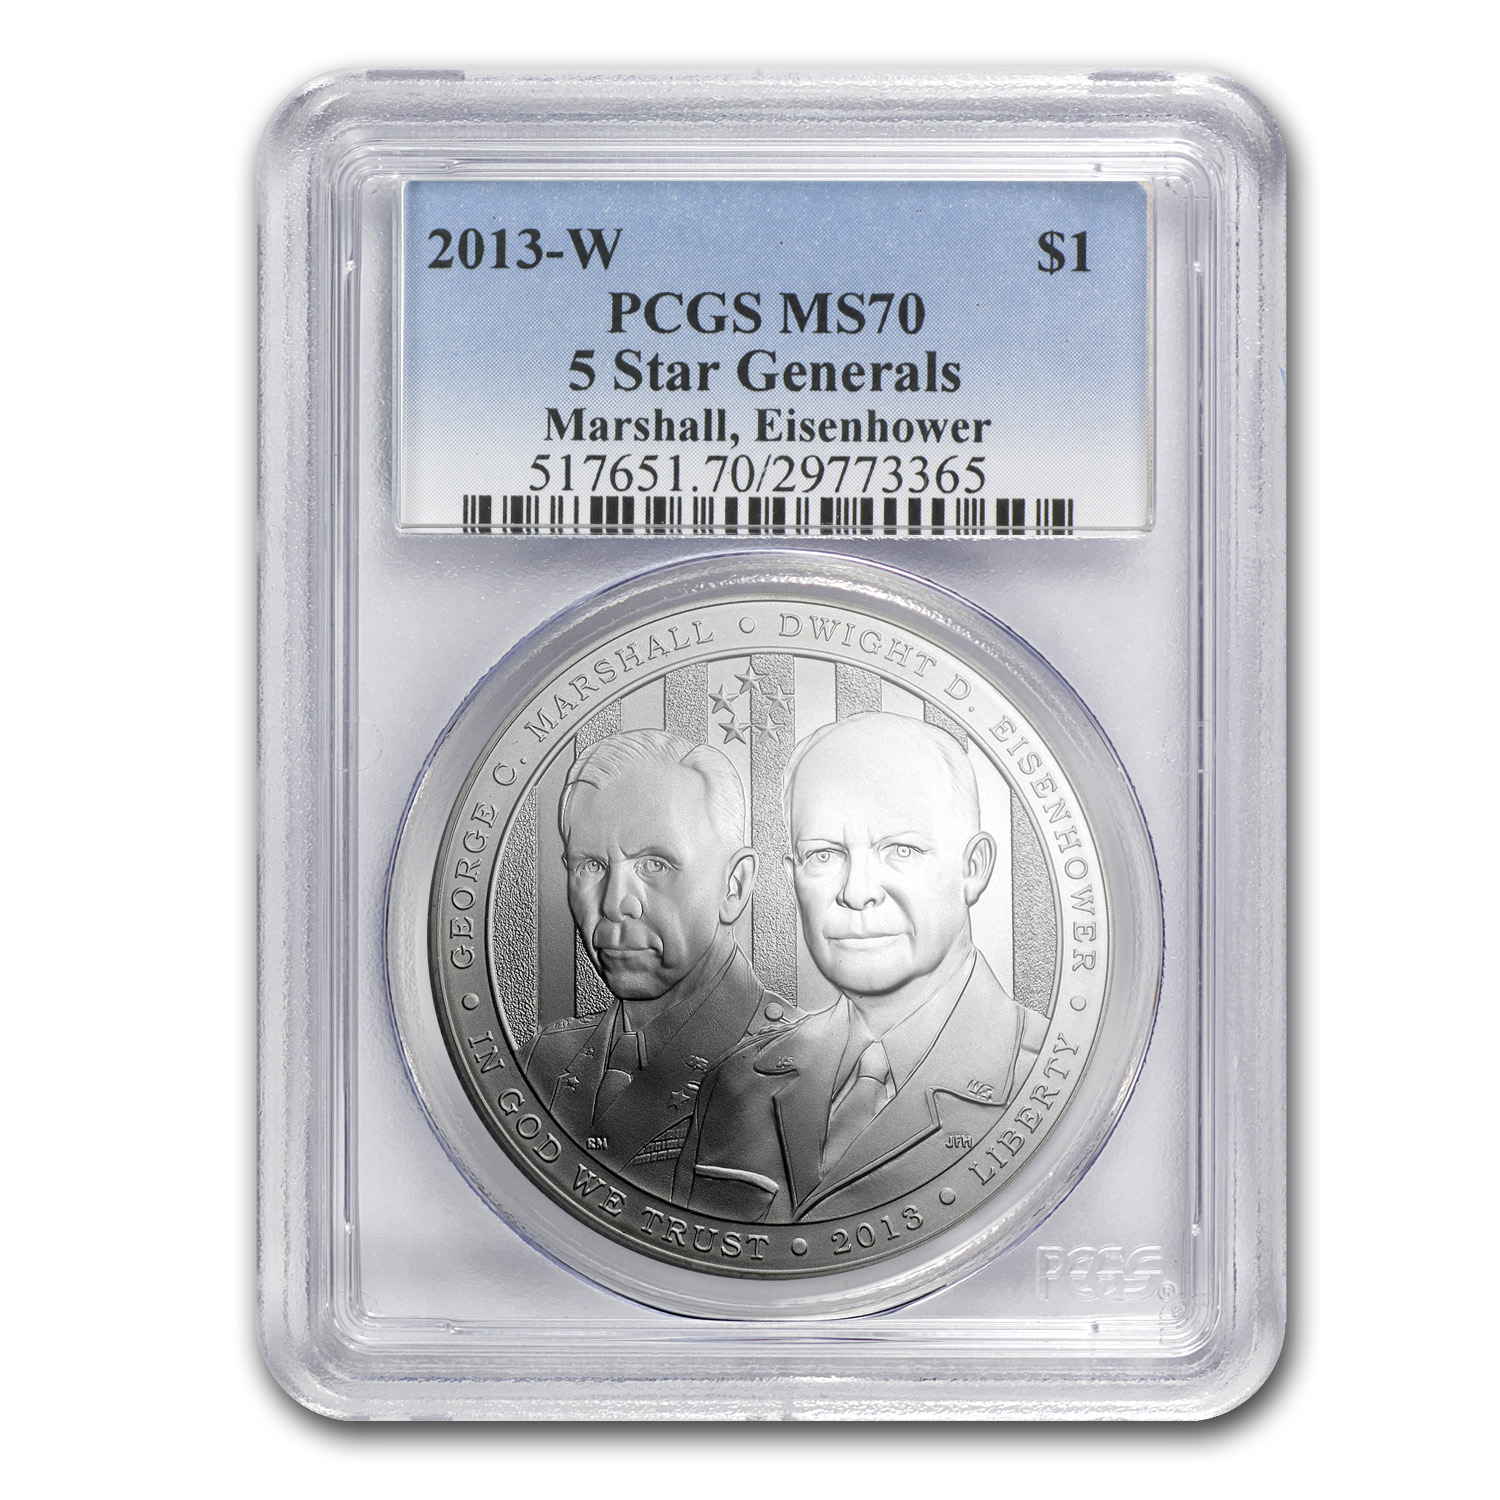 2013-W Five Star General $1 Silver Commemorative MS-70 PCGS